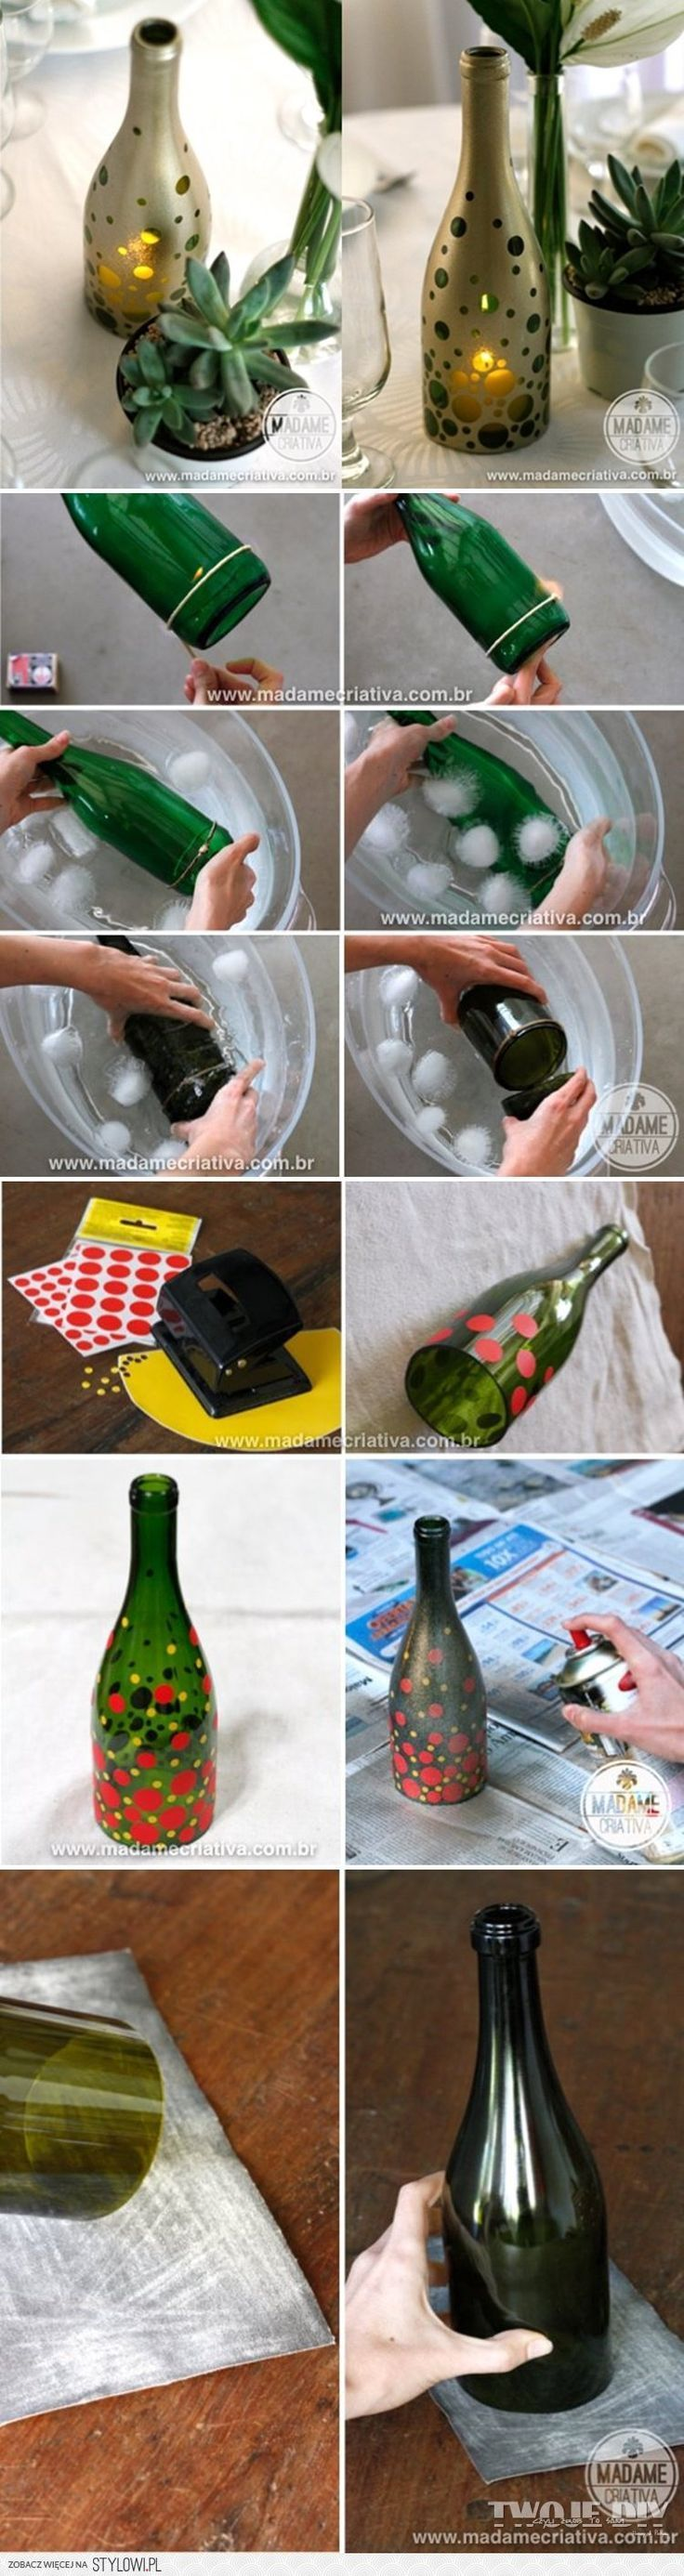 26 Wine Bottle Crafts To Surprise Your Guests Beautifully~ I have the wine bottles, so this would be an inexpensive way to decorate with candles!